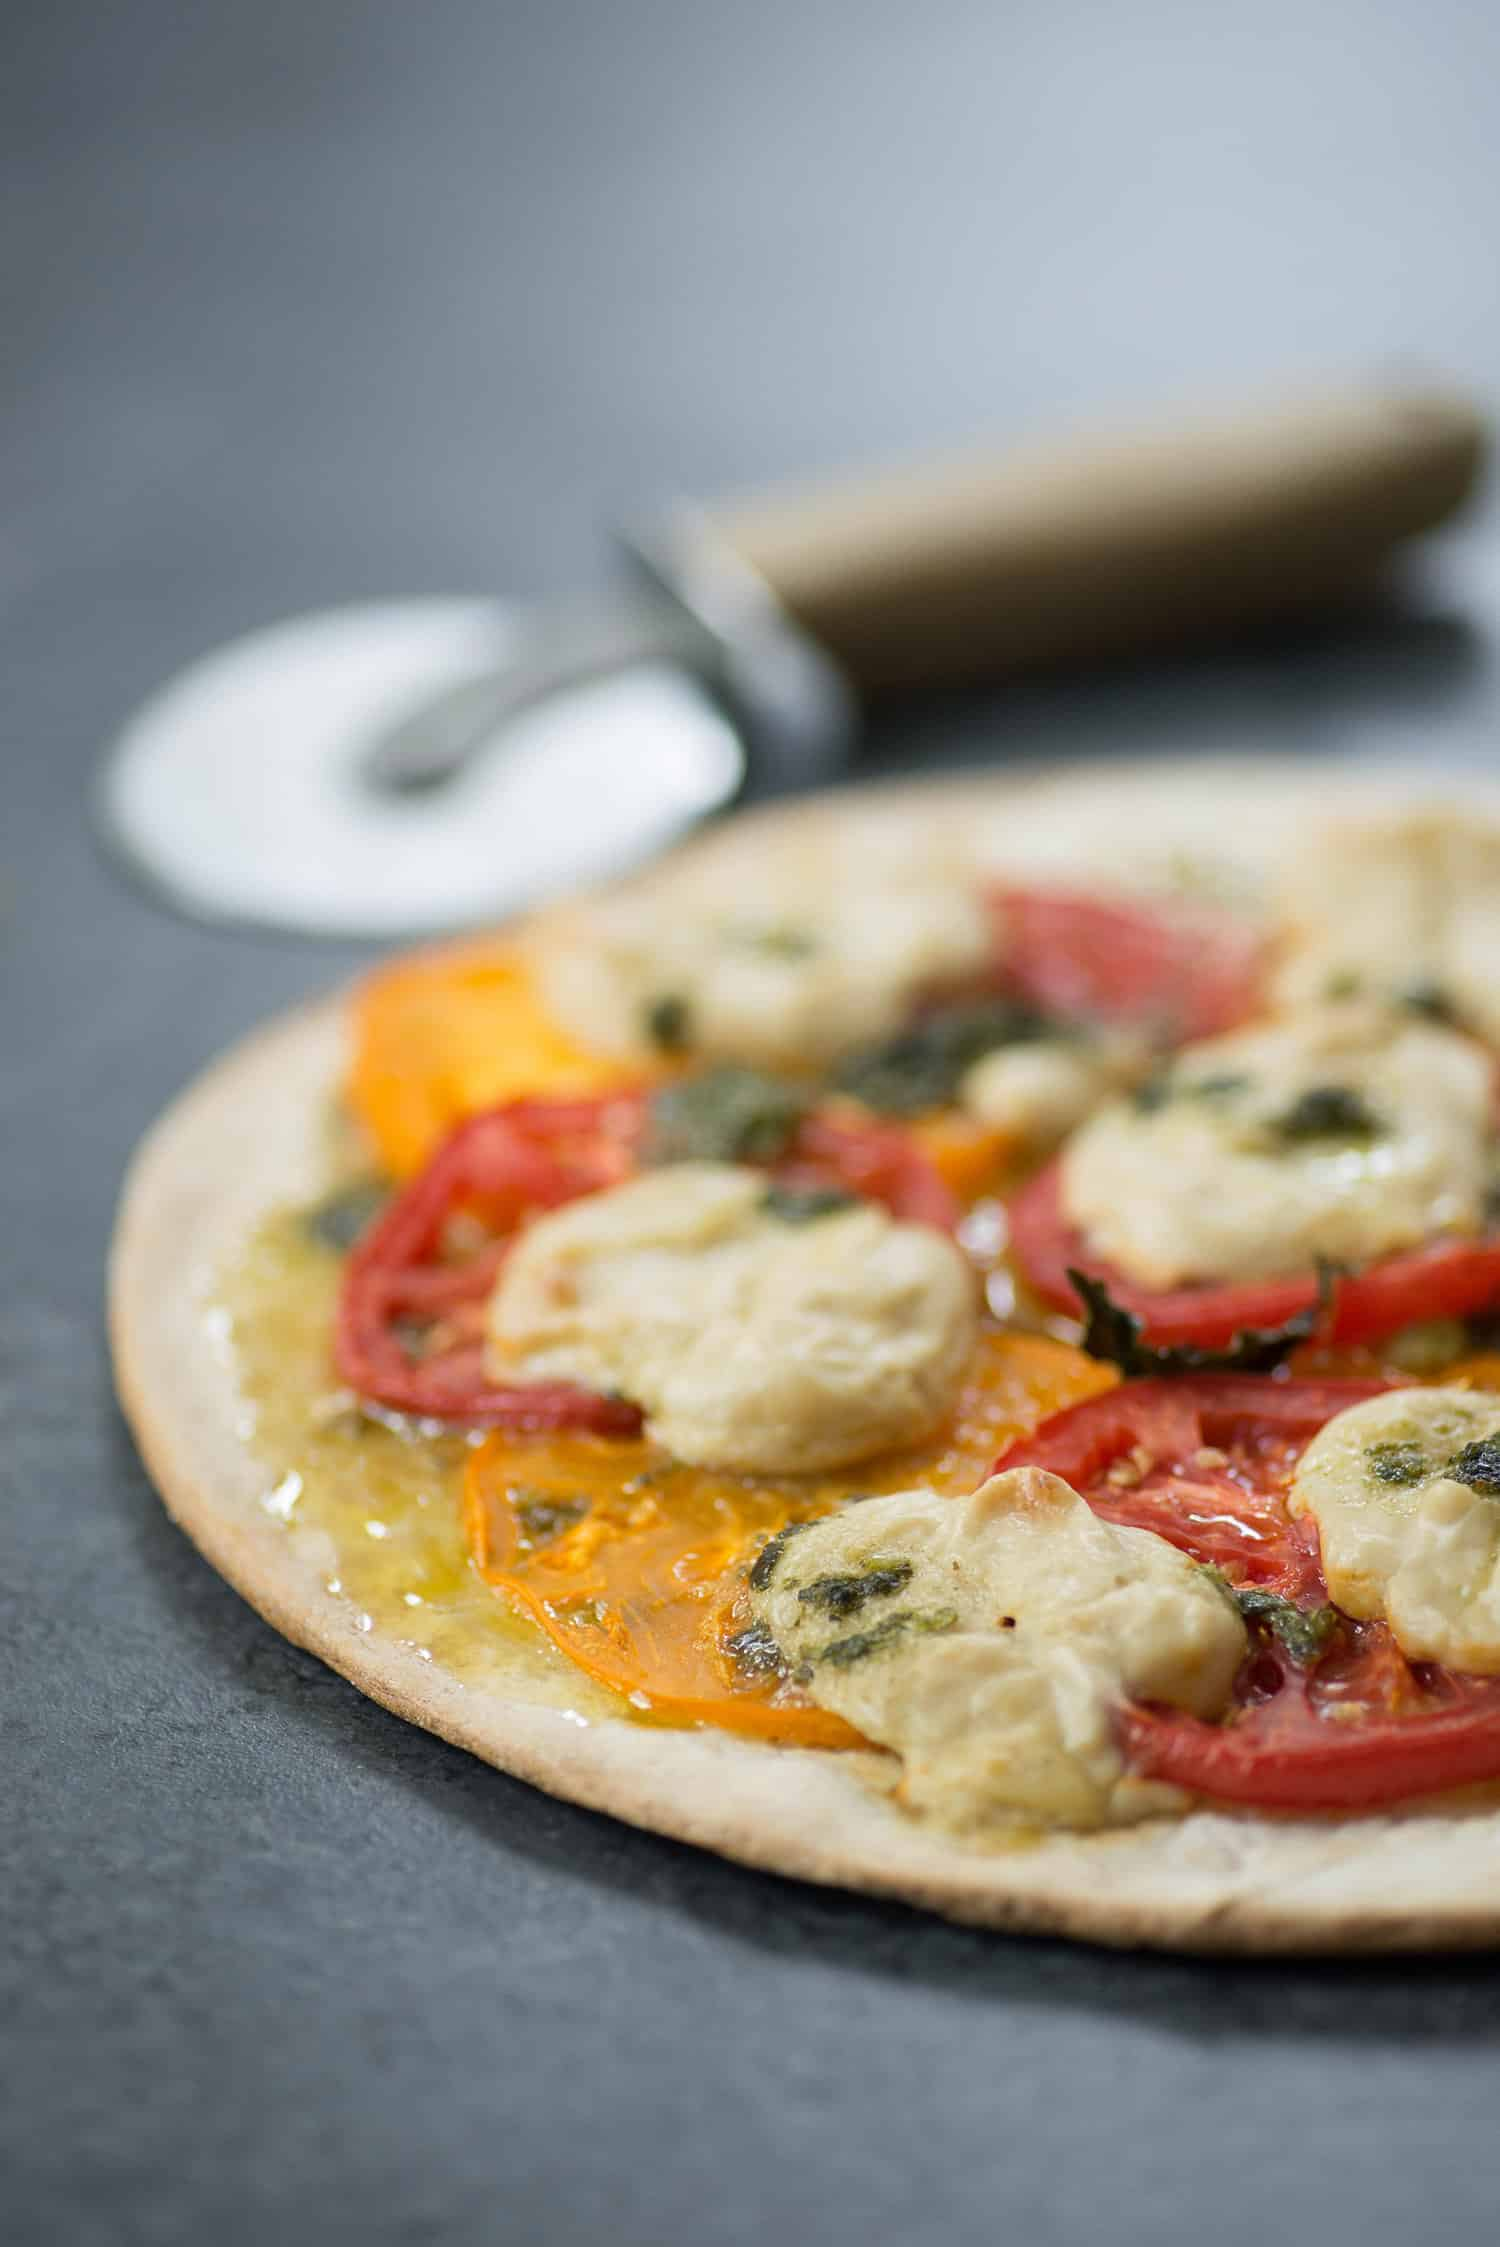 Vegan Pizza! Fresh margherita pizza with cashew mozzerella cheese, heirloom tomatoes and fresh basil. | www.delishknowledge.com